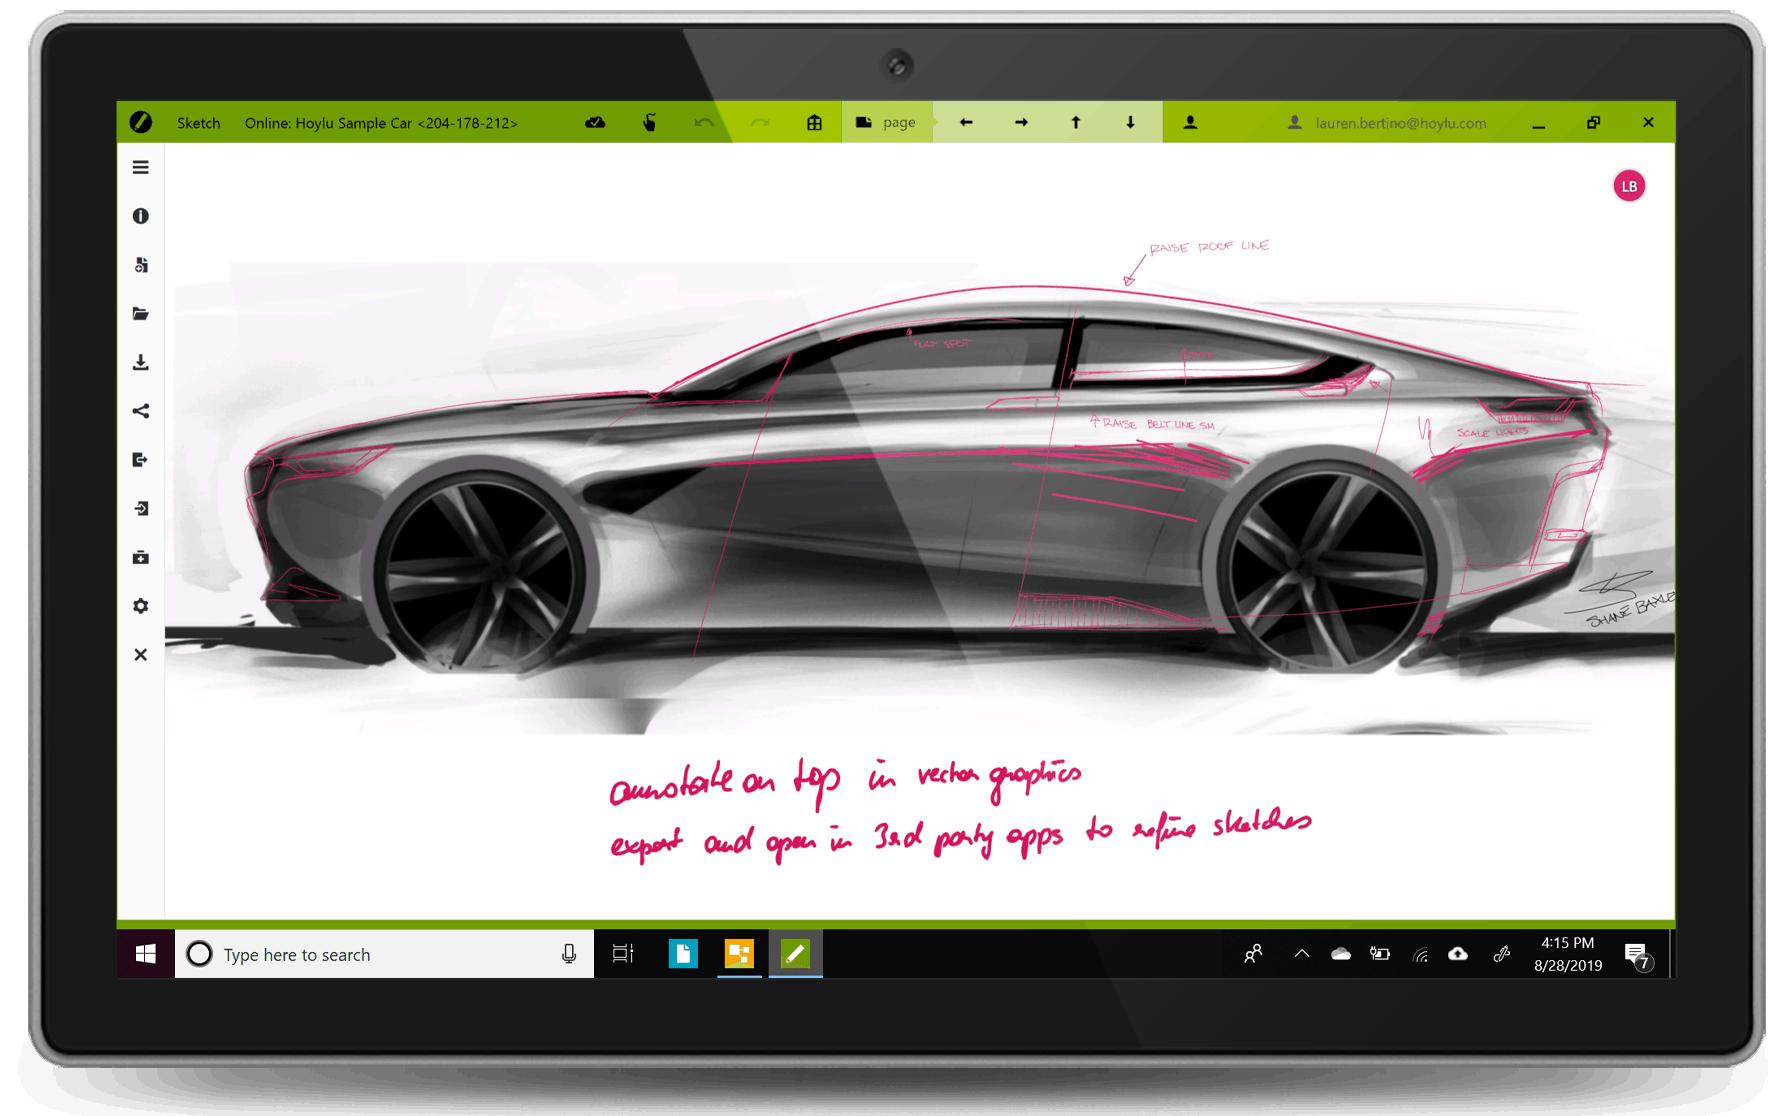 Hoylu Connected Workspaces™ application car sketch displayed on Windows surface tablet